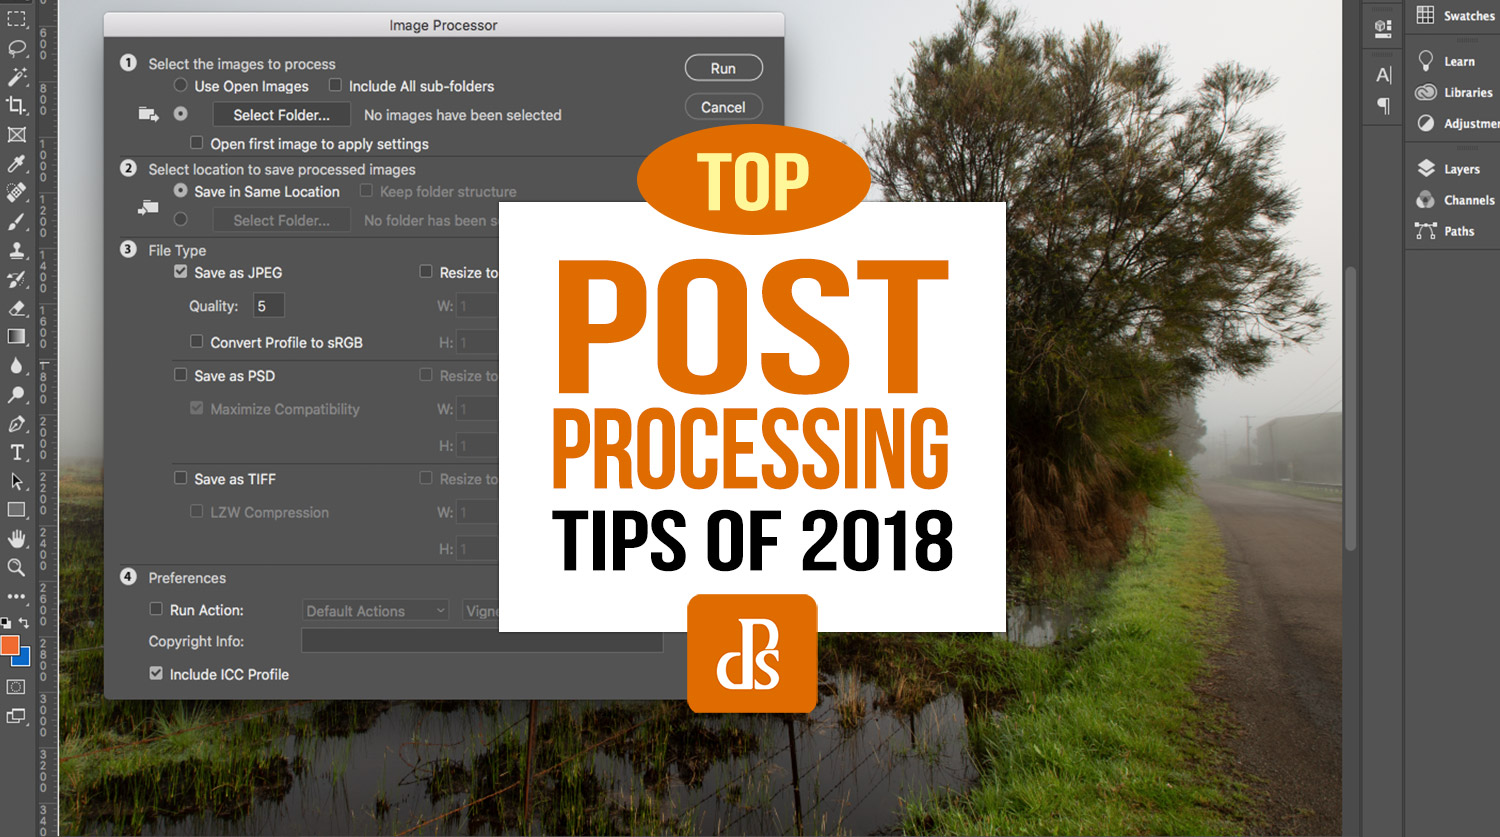 The dPS Top Post-Processing Photography Tips of 2018